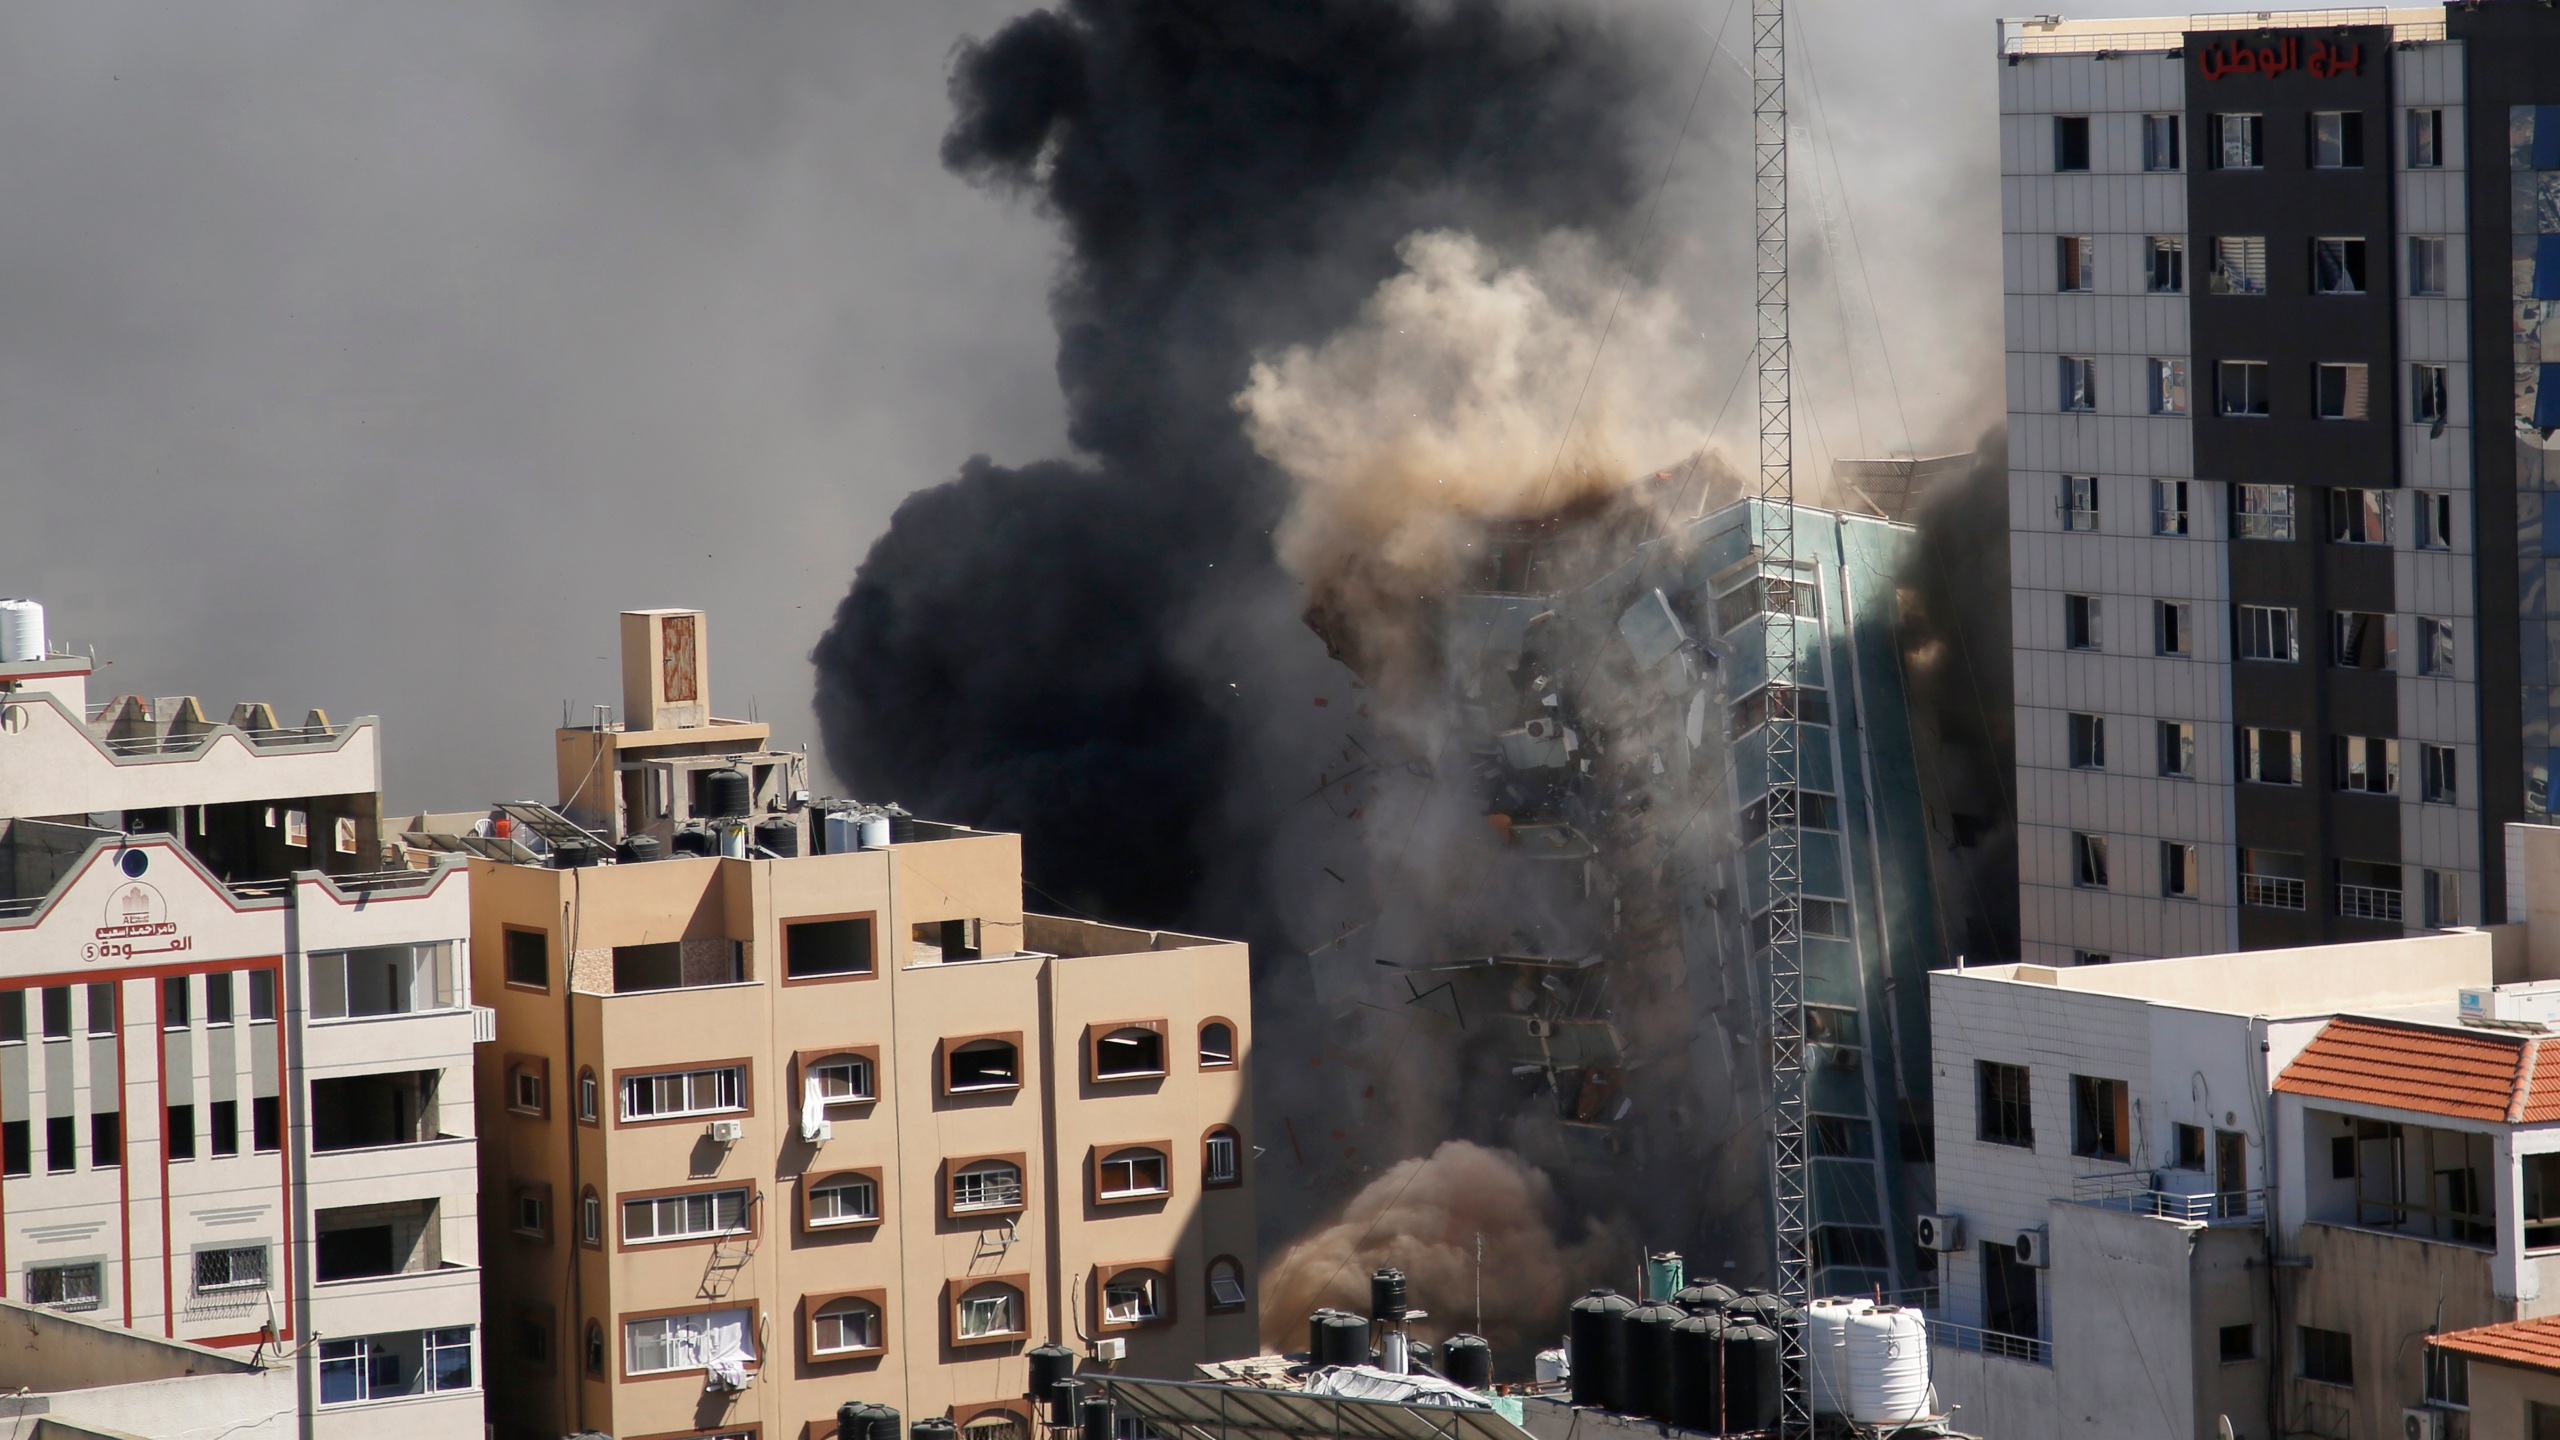 A view of a 11-story building housing AP office and other media in Gaza City is seen moments after Israeli warplanes demolished it, Saturday, May 15, 2021. The airstrike Saturday came roughly an hour after the Israeli military ordered people to evacuate the building. There was no immediate explanation for why the building was targeted. The building housed The Associated Press, Al-Jazeera and a number of offices and apartments. (AP Photo/Hatem Moussa)